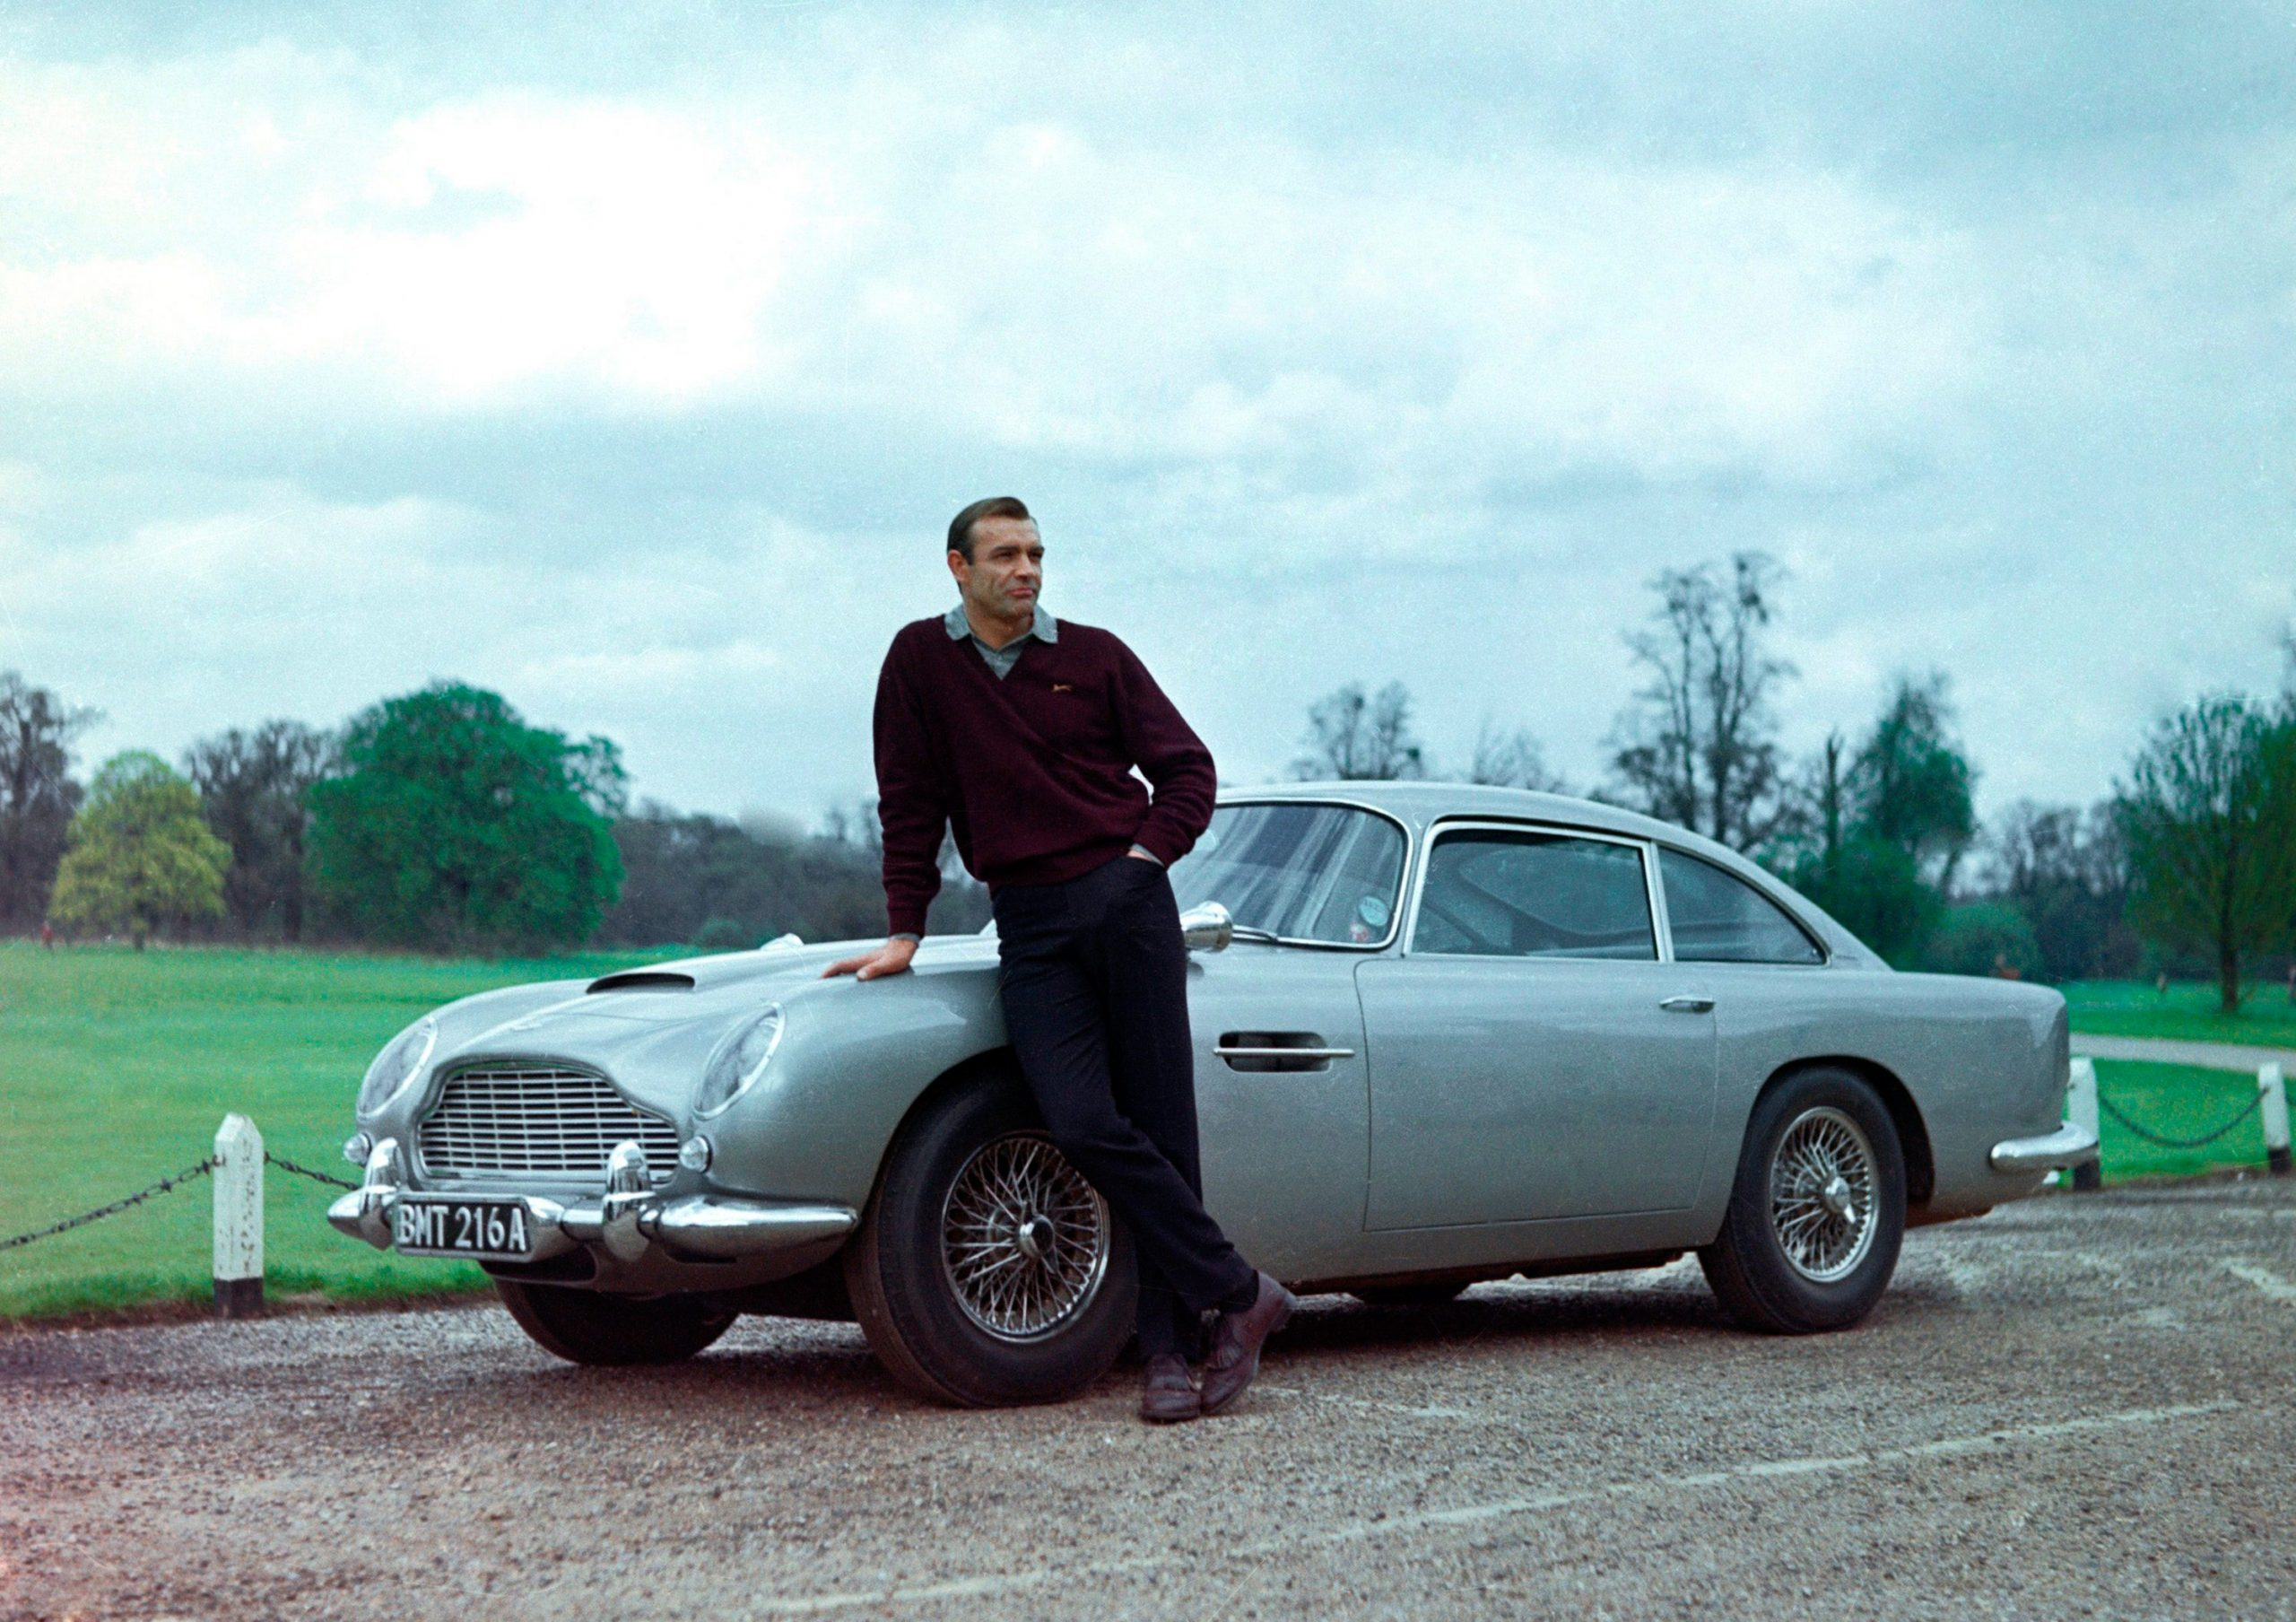 The Complete List of James Bond Movies